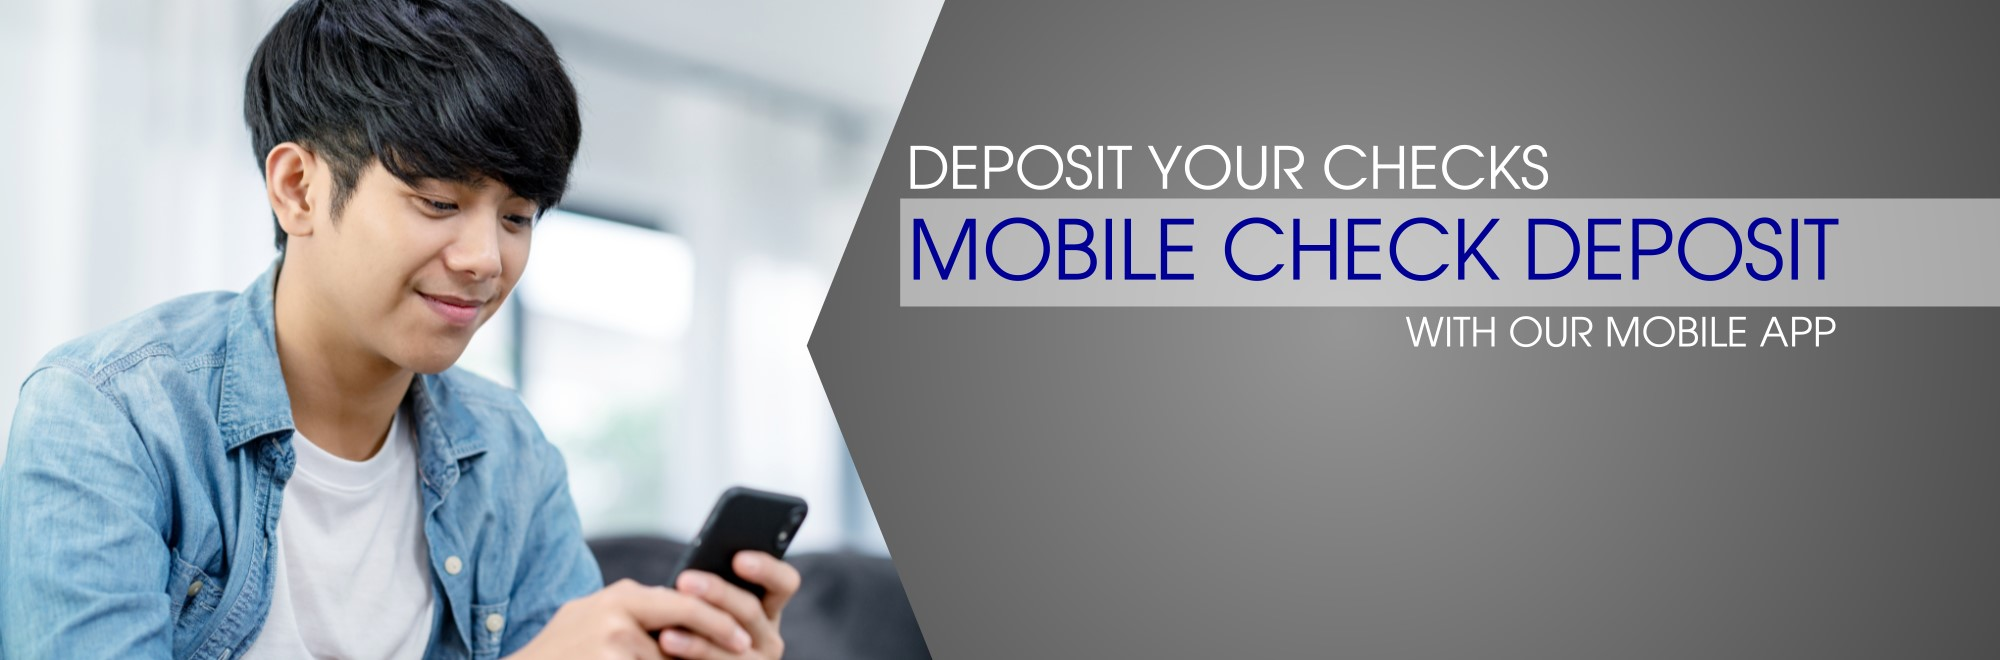 Deposit your checks with Mobile Check deposit in our mobile app